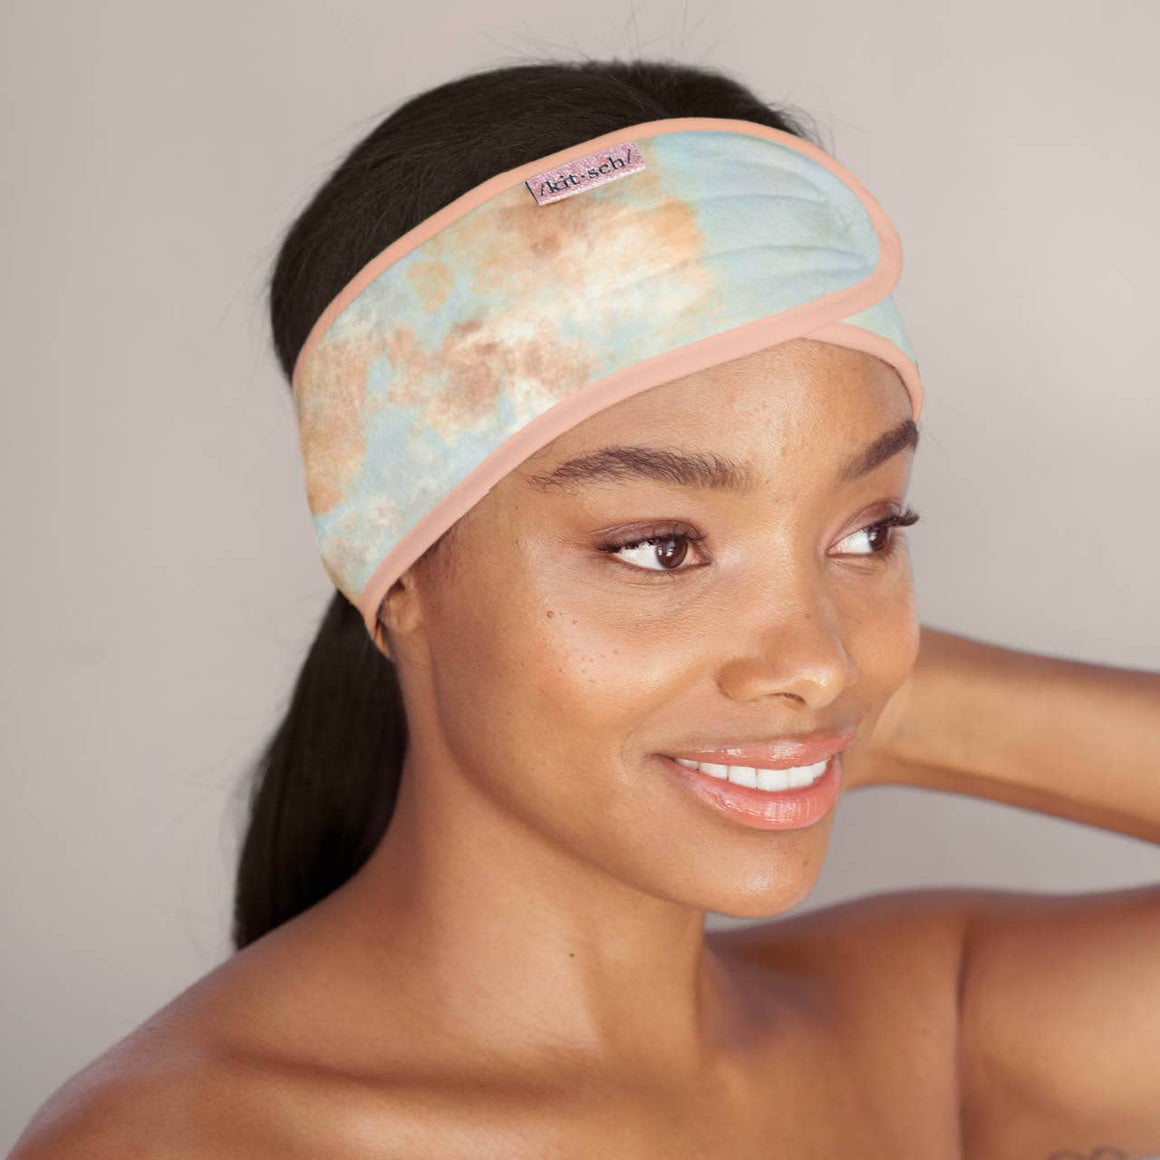 KITSCH - Microfiber Spa Headband - Sunset Tie Dye